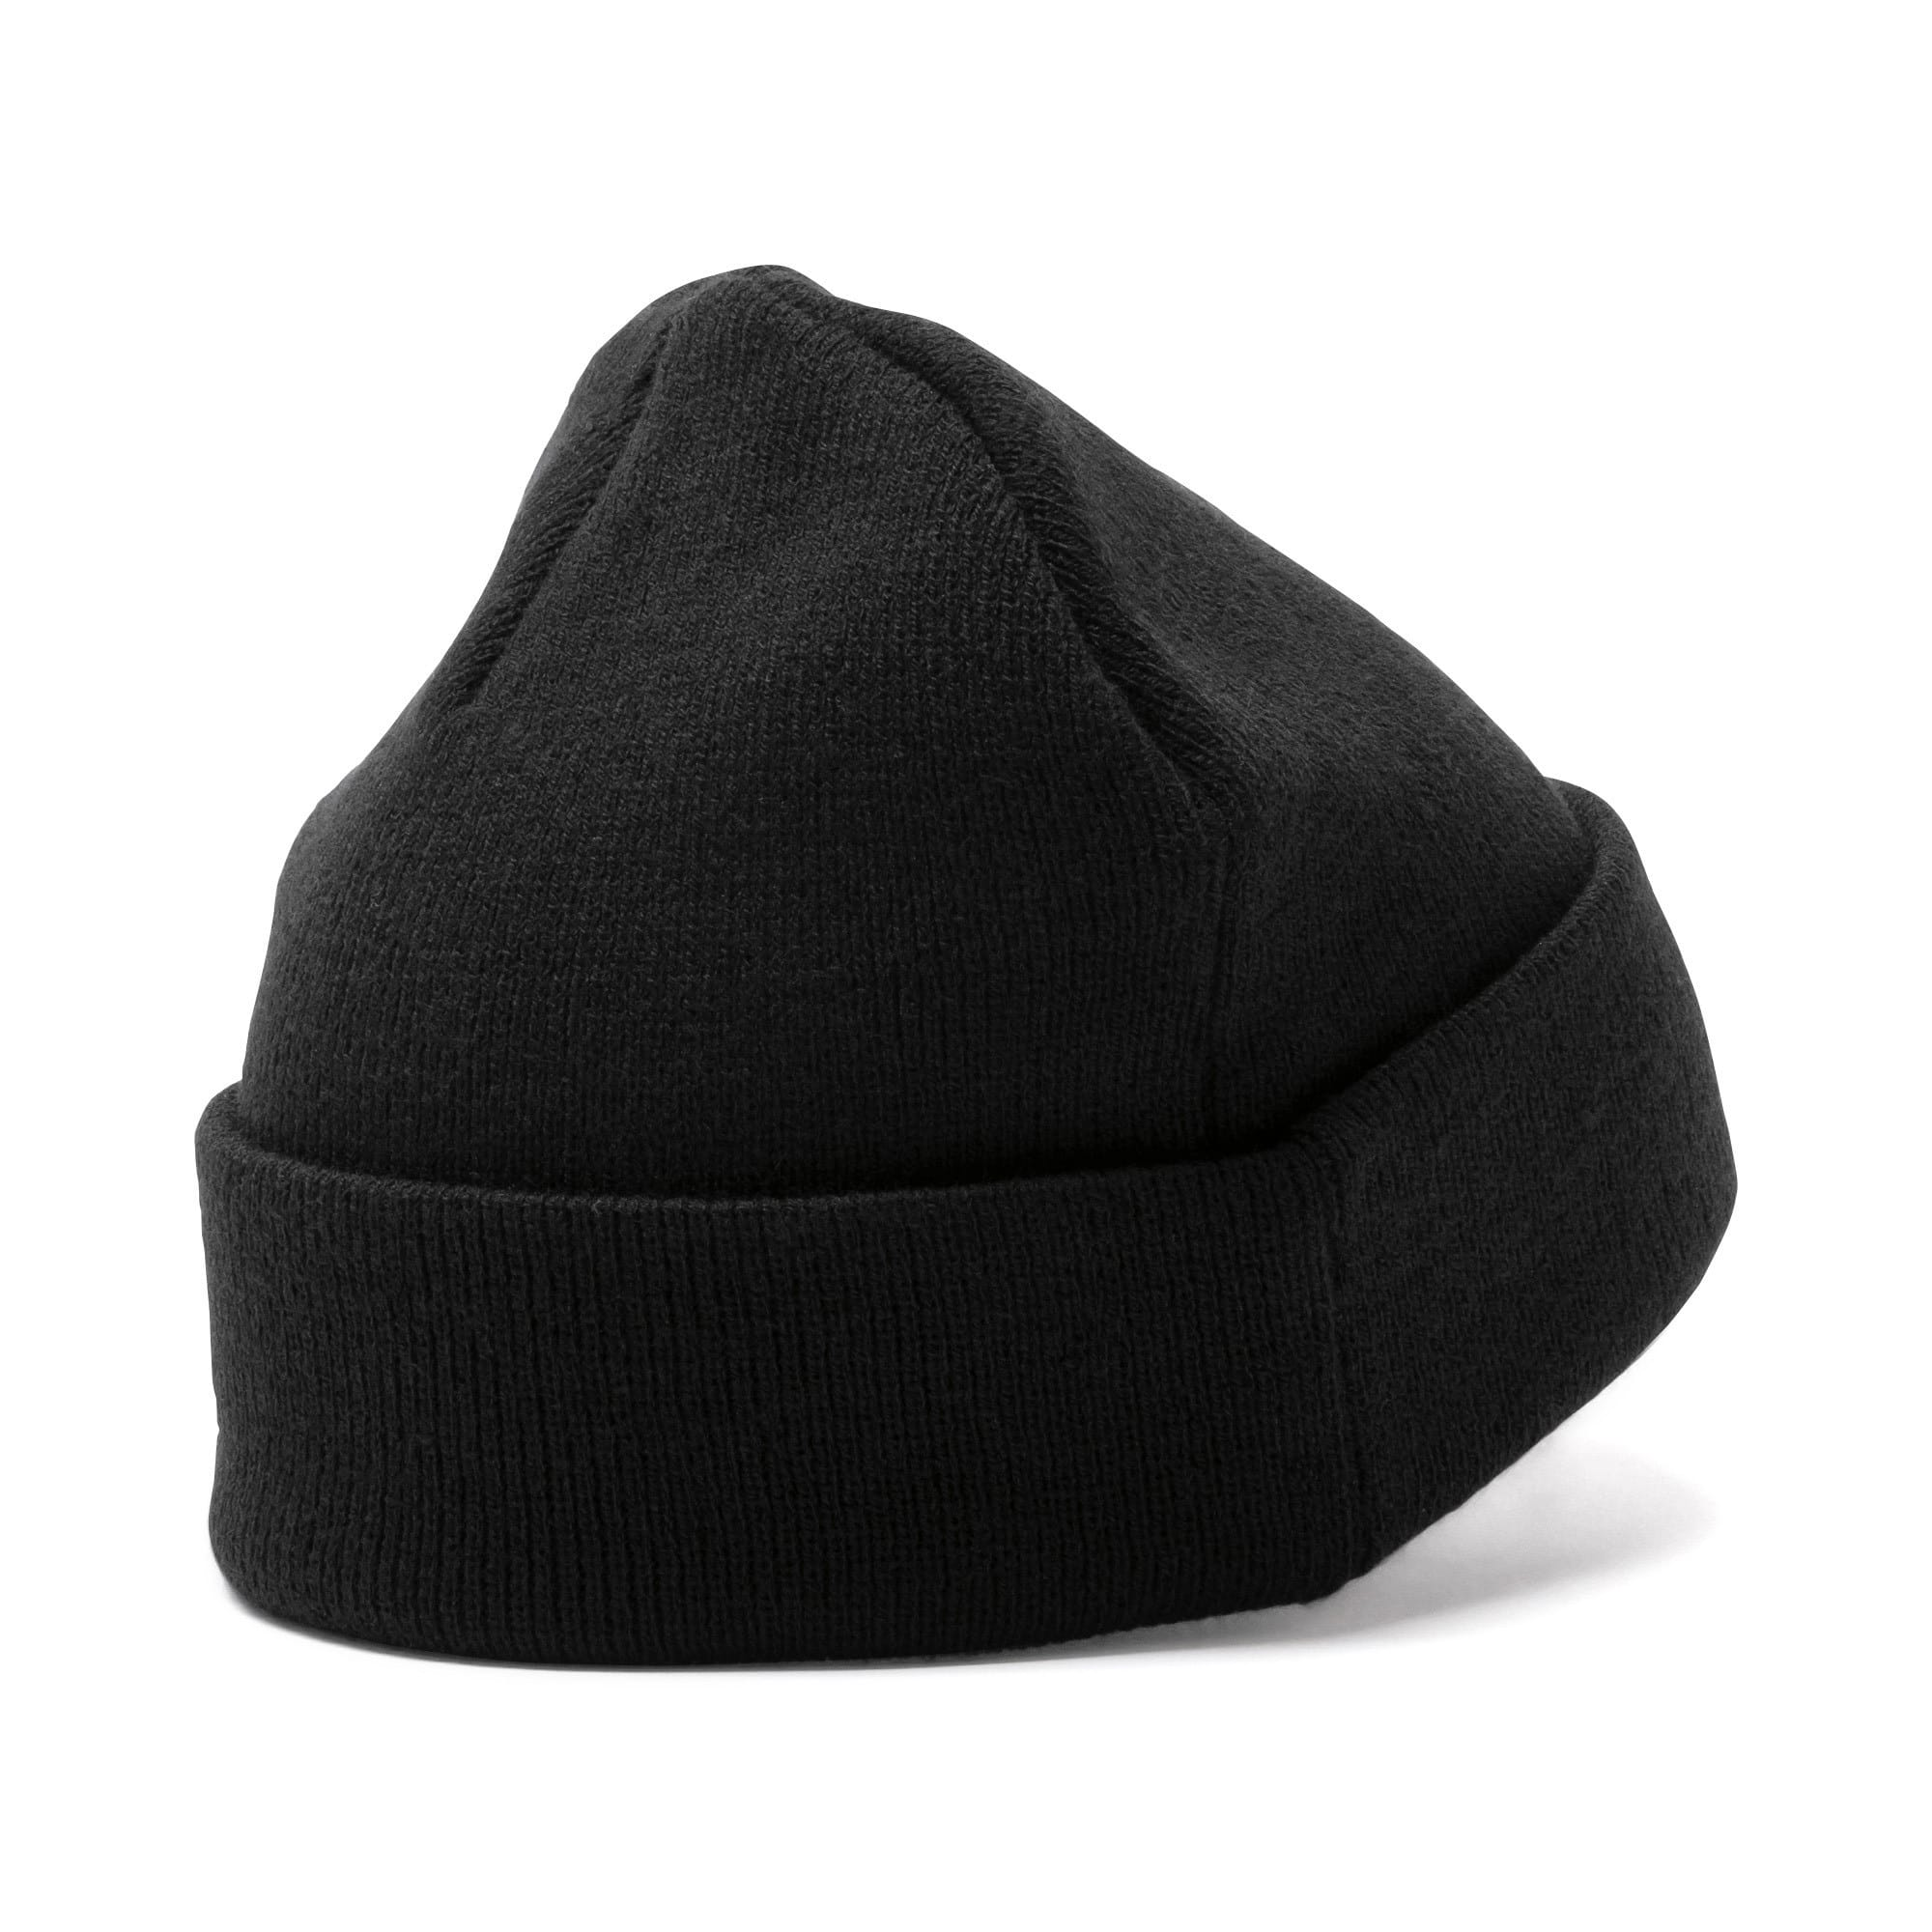 Thumbnail 3 of Epoch Street Beanie, Puma Black, medium